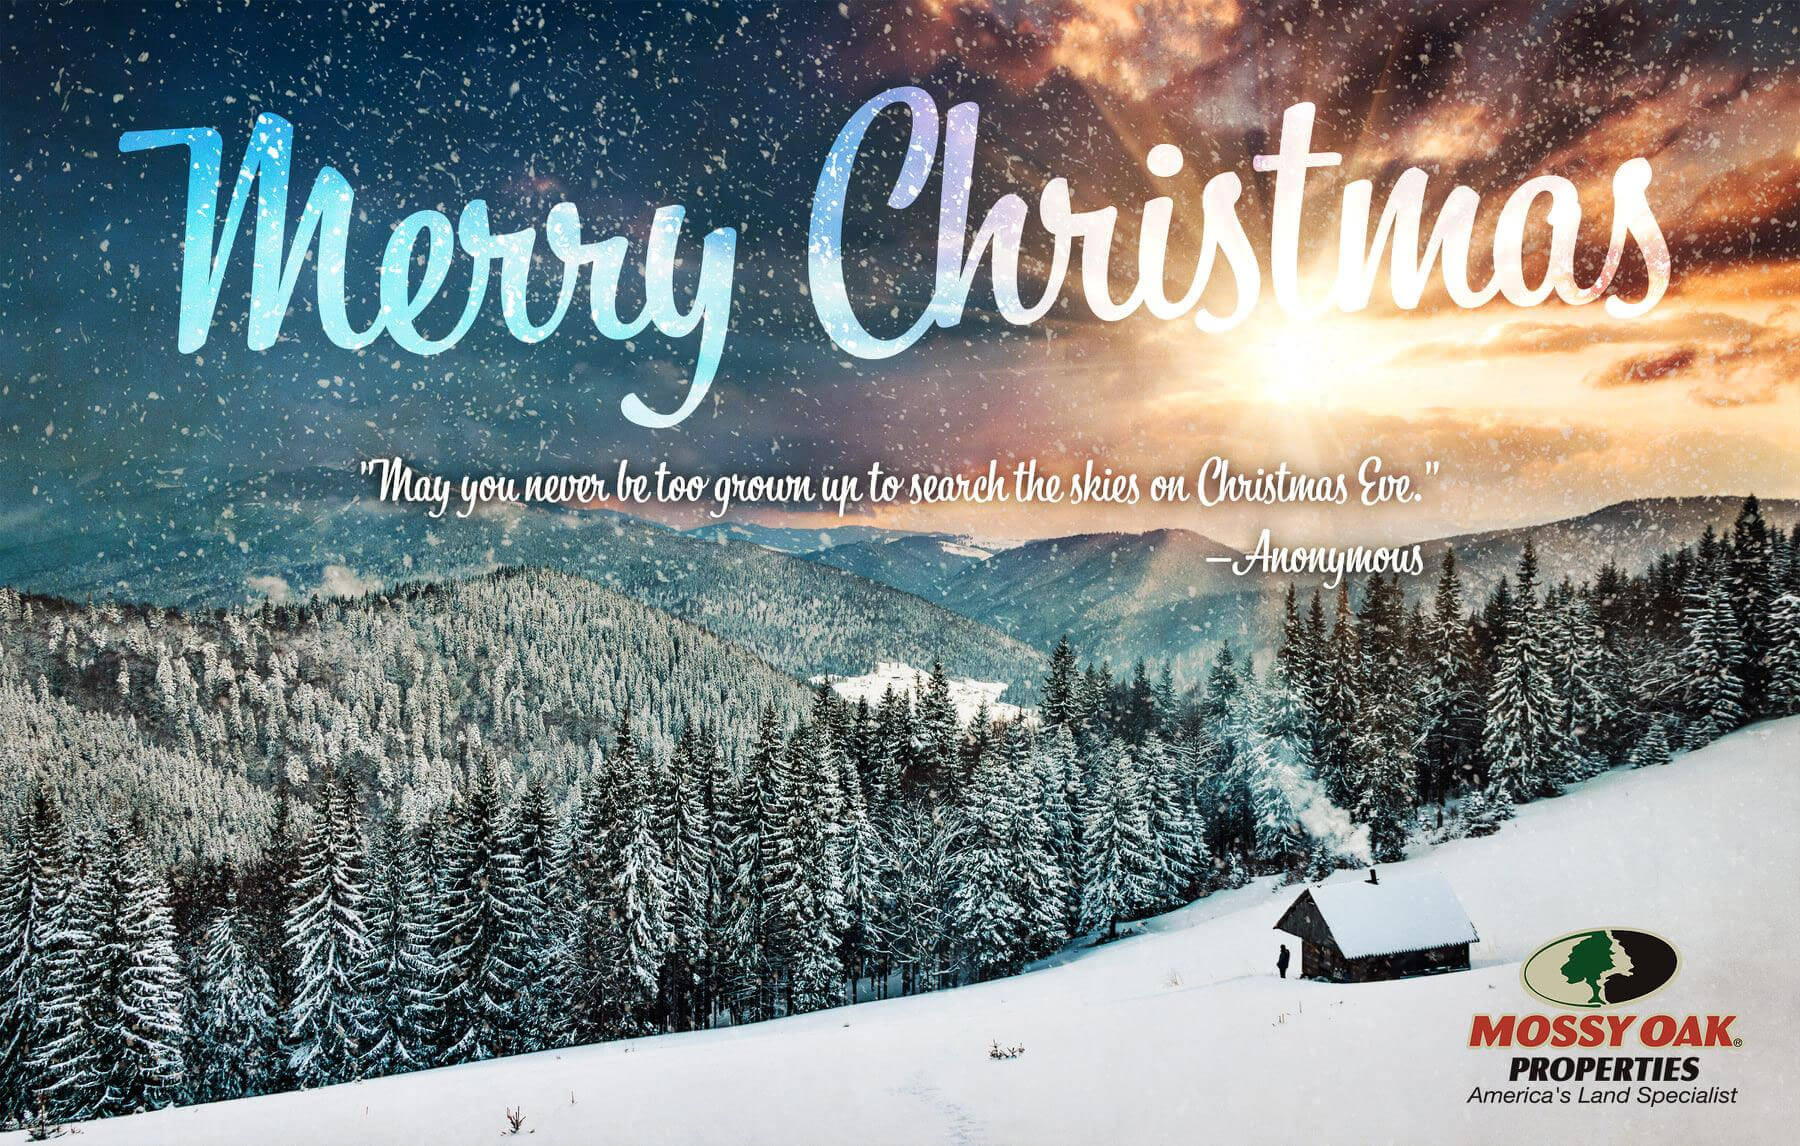 Wishing you all a great Christmas and Happy New Year!